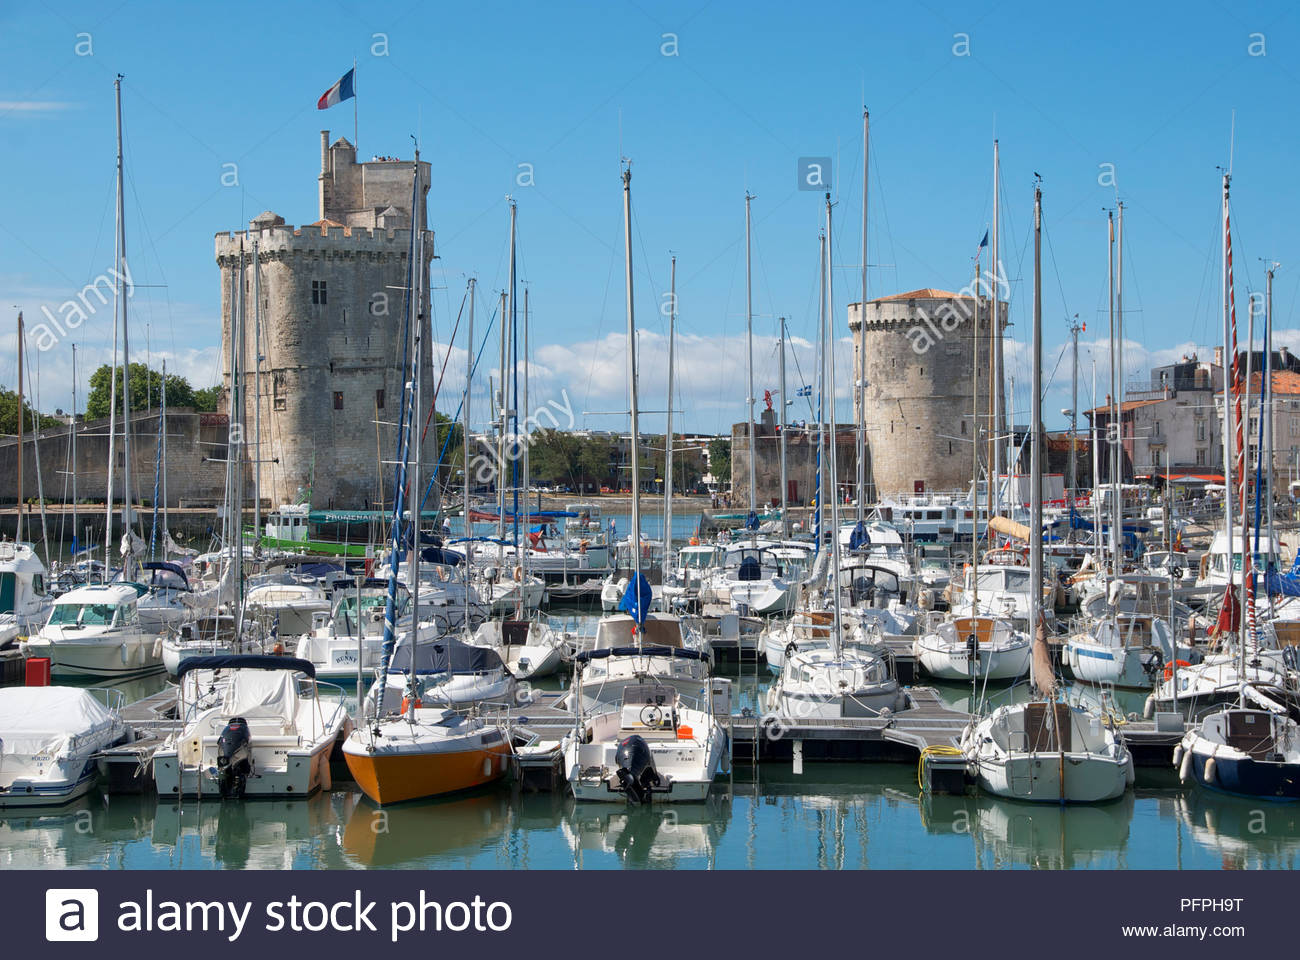 France La Rochelle Vieux Port Boats Moored In Crowded Old Harbour